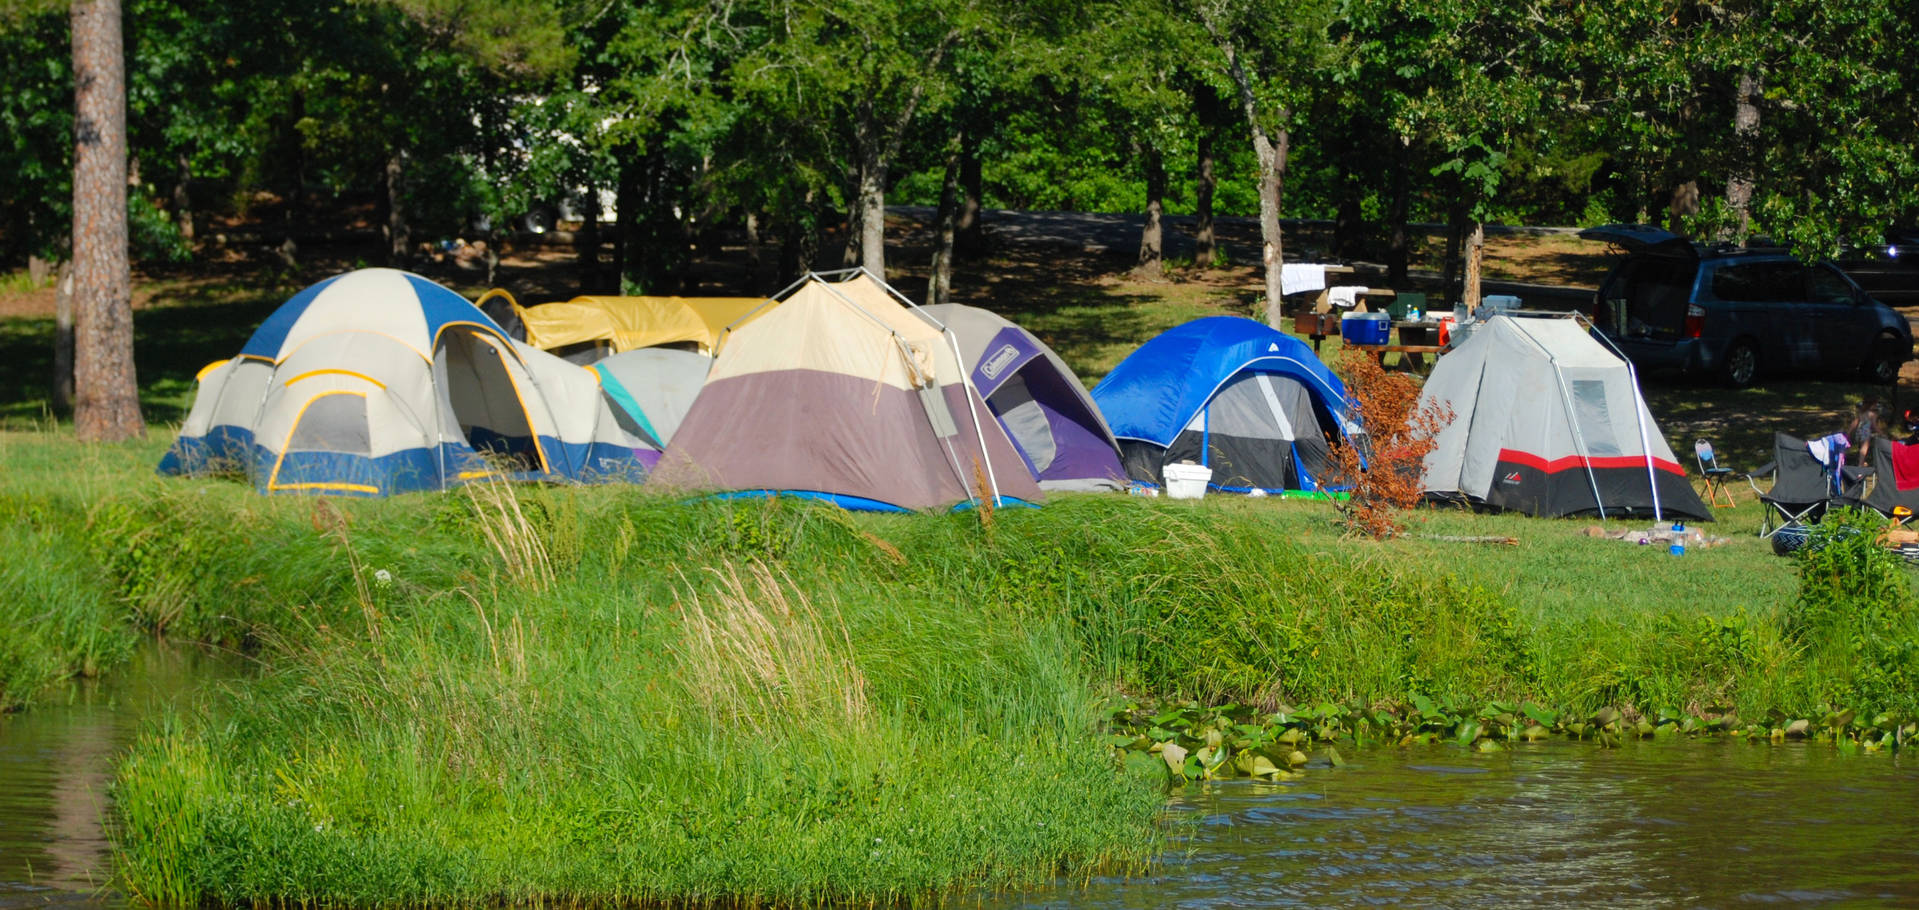 Consider These Safety Tips When Camping In Mother Nature